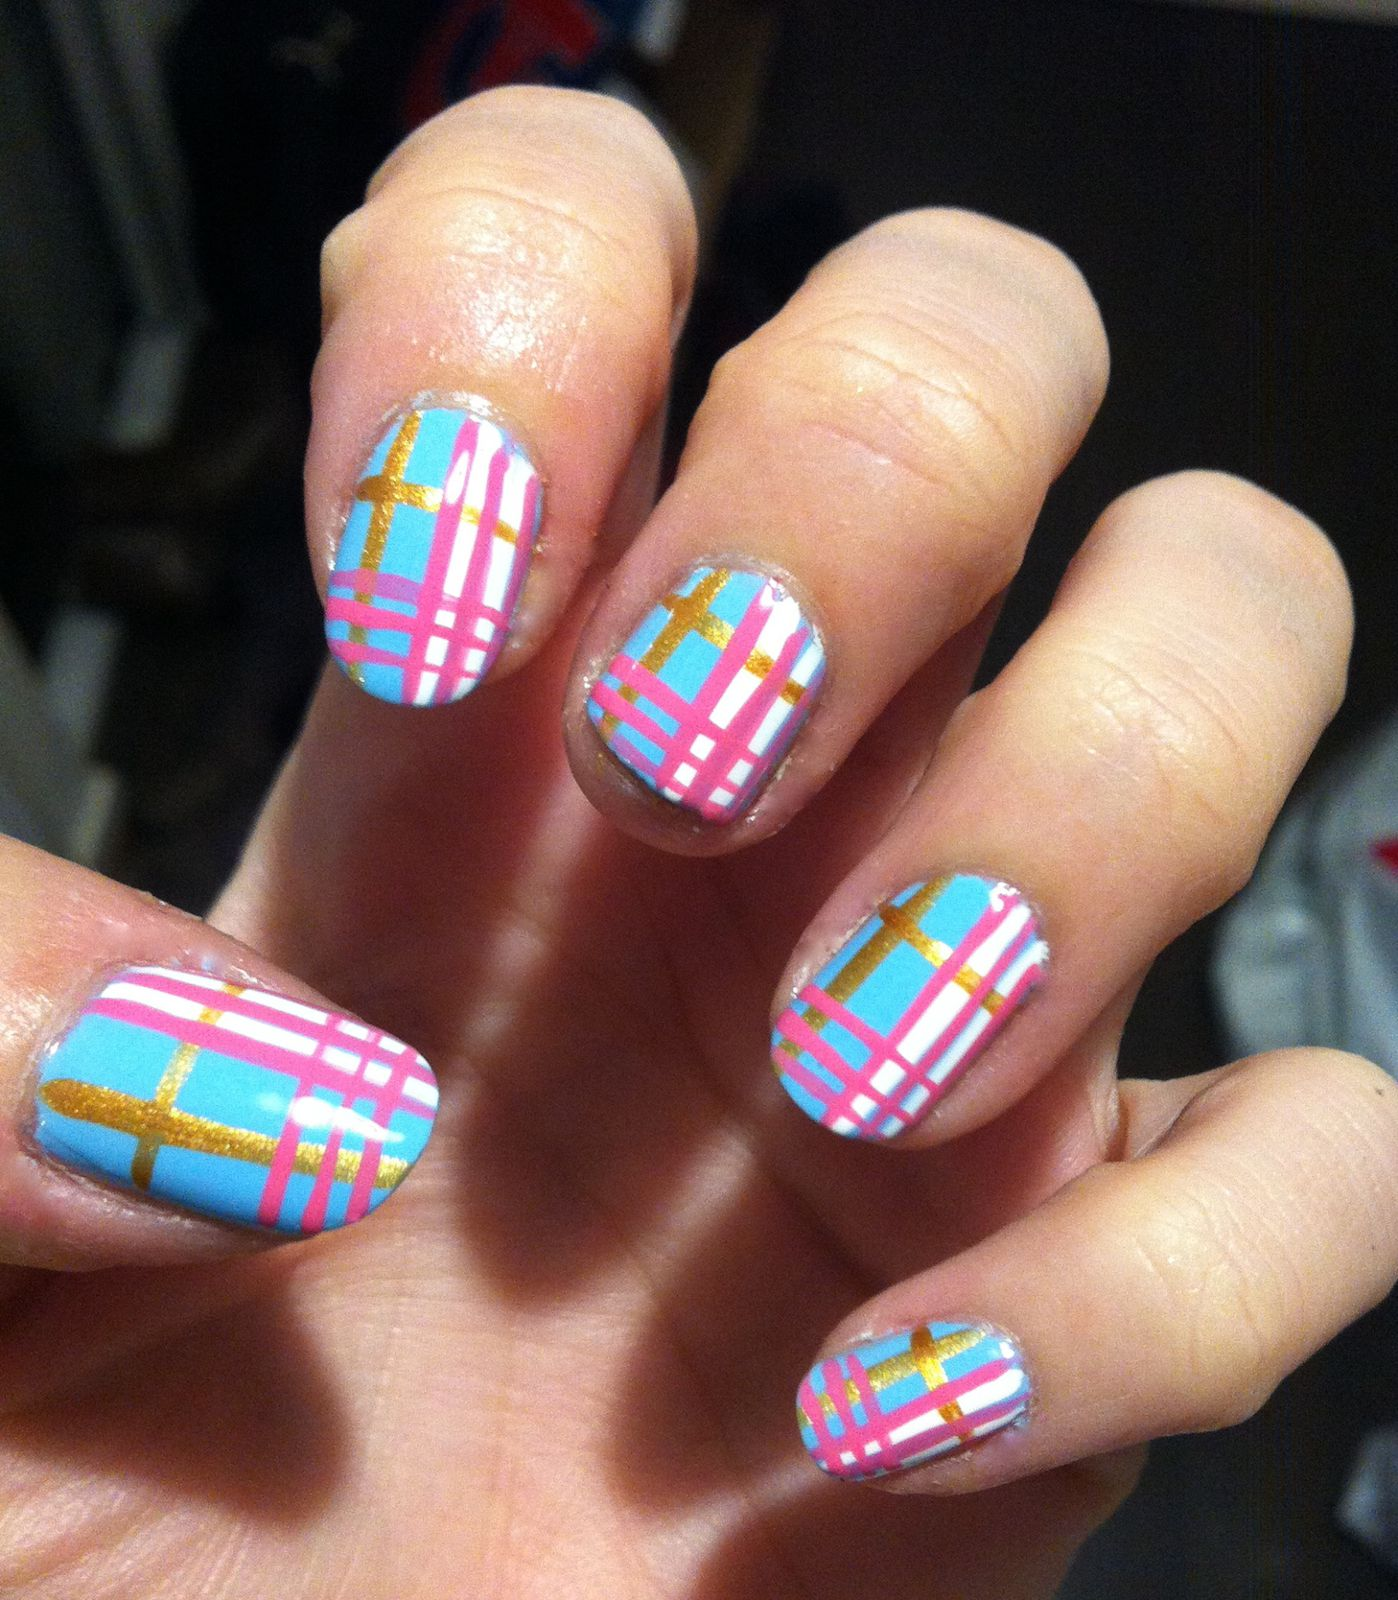 nailstorming carreaux